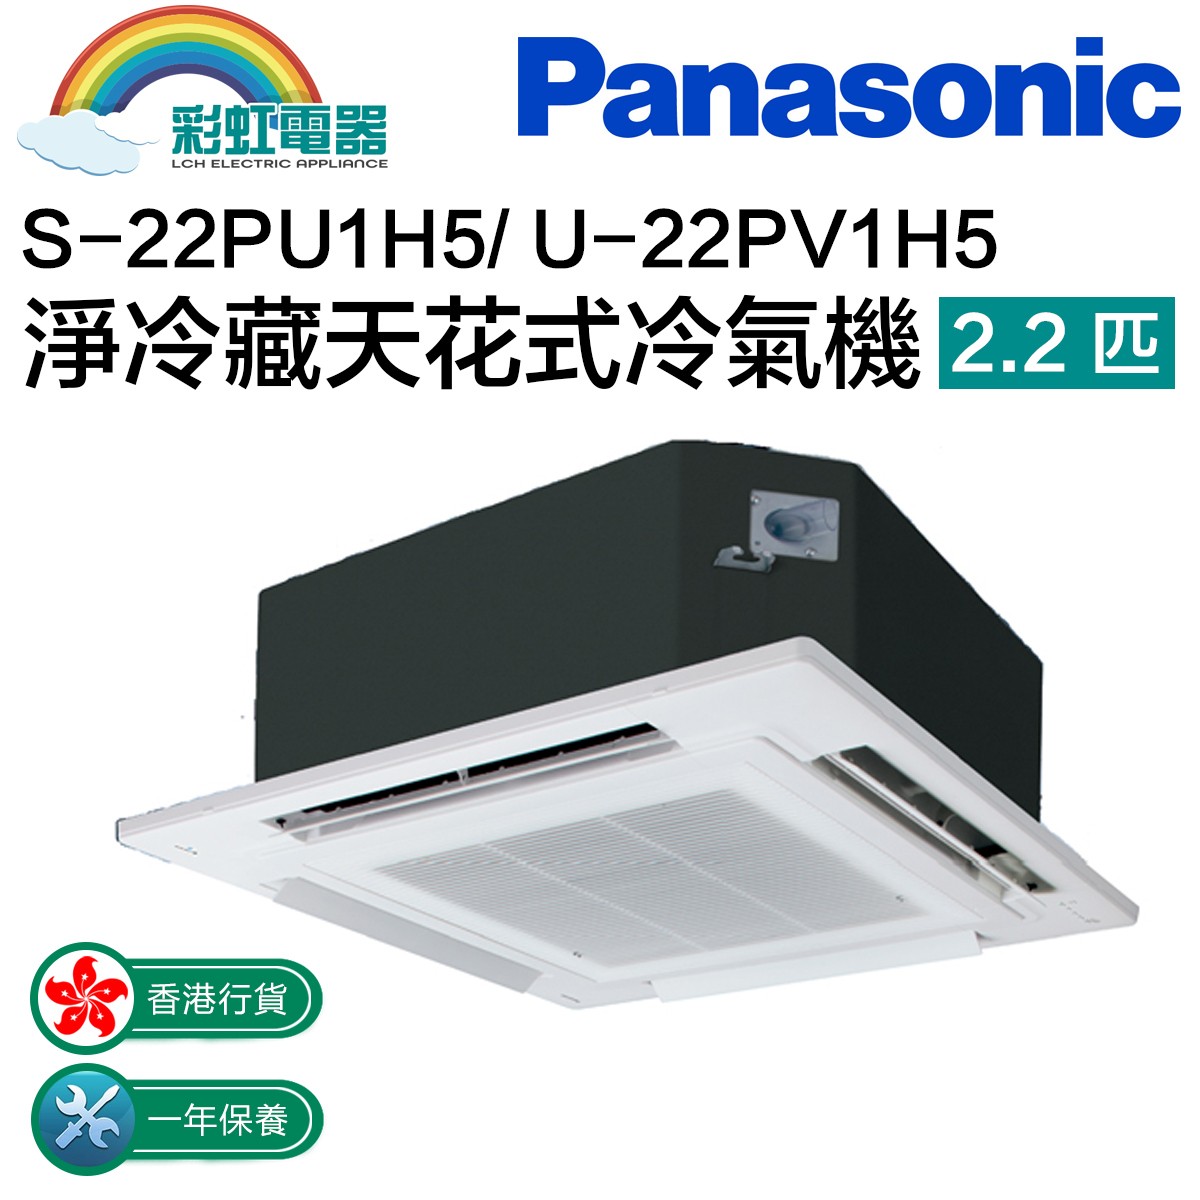 S-22pu1h5 / u-22pv1h5 net refrigerating day fancy air conditioner 2.2 pieces